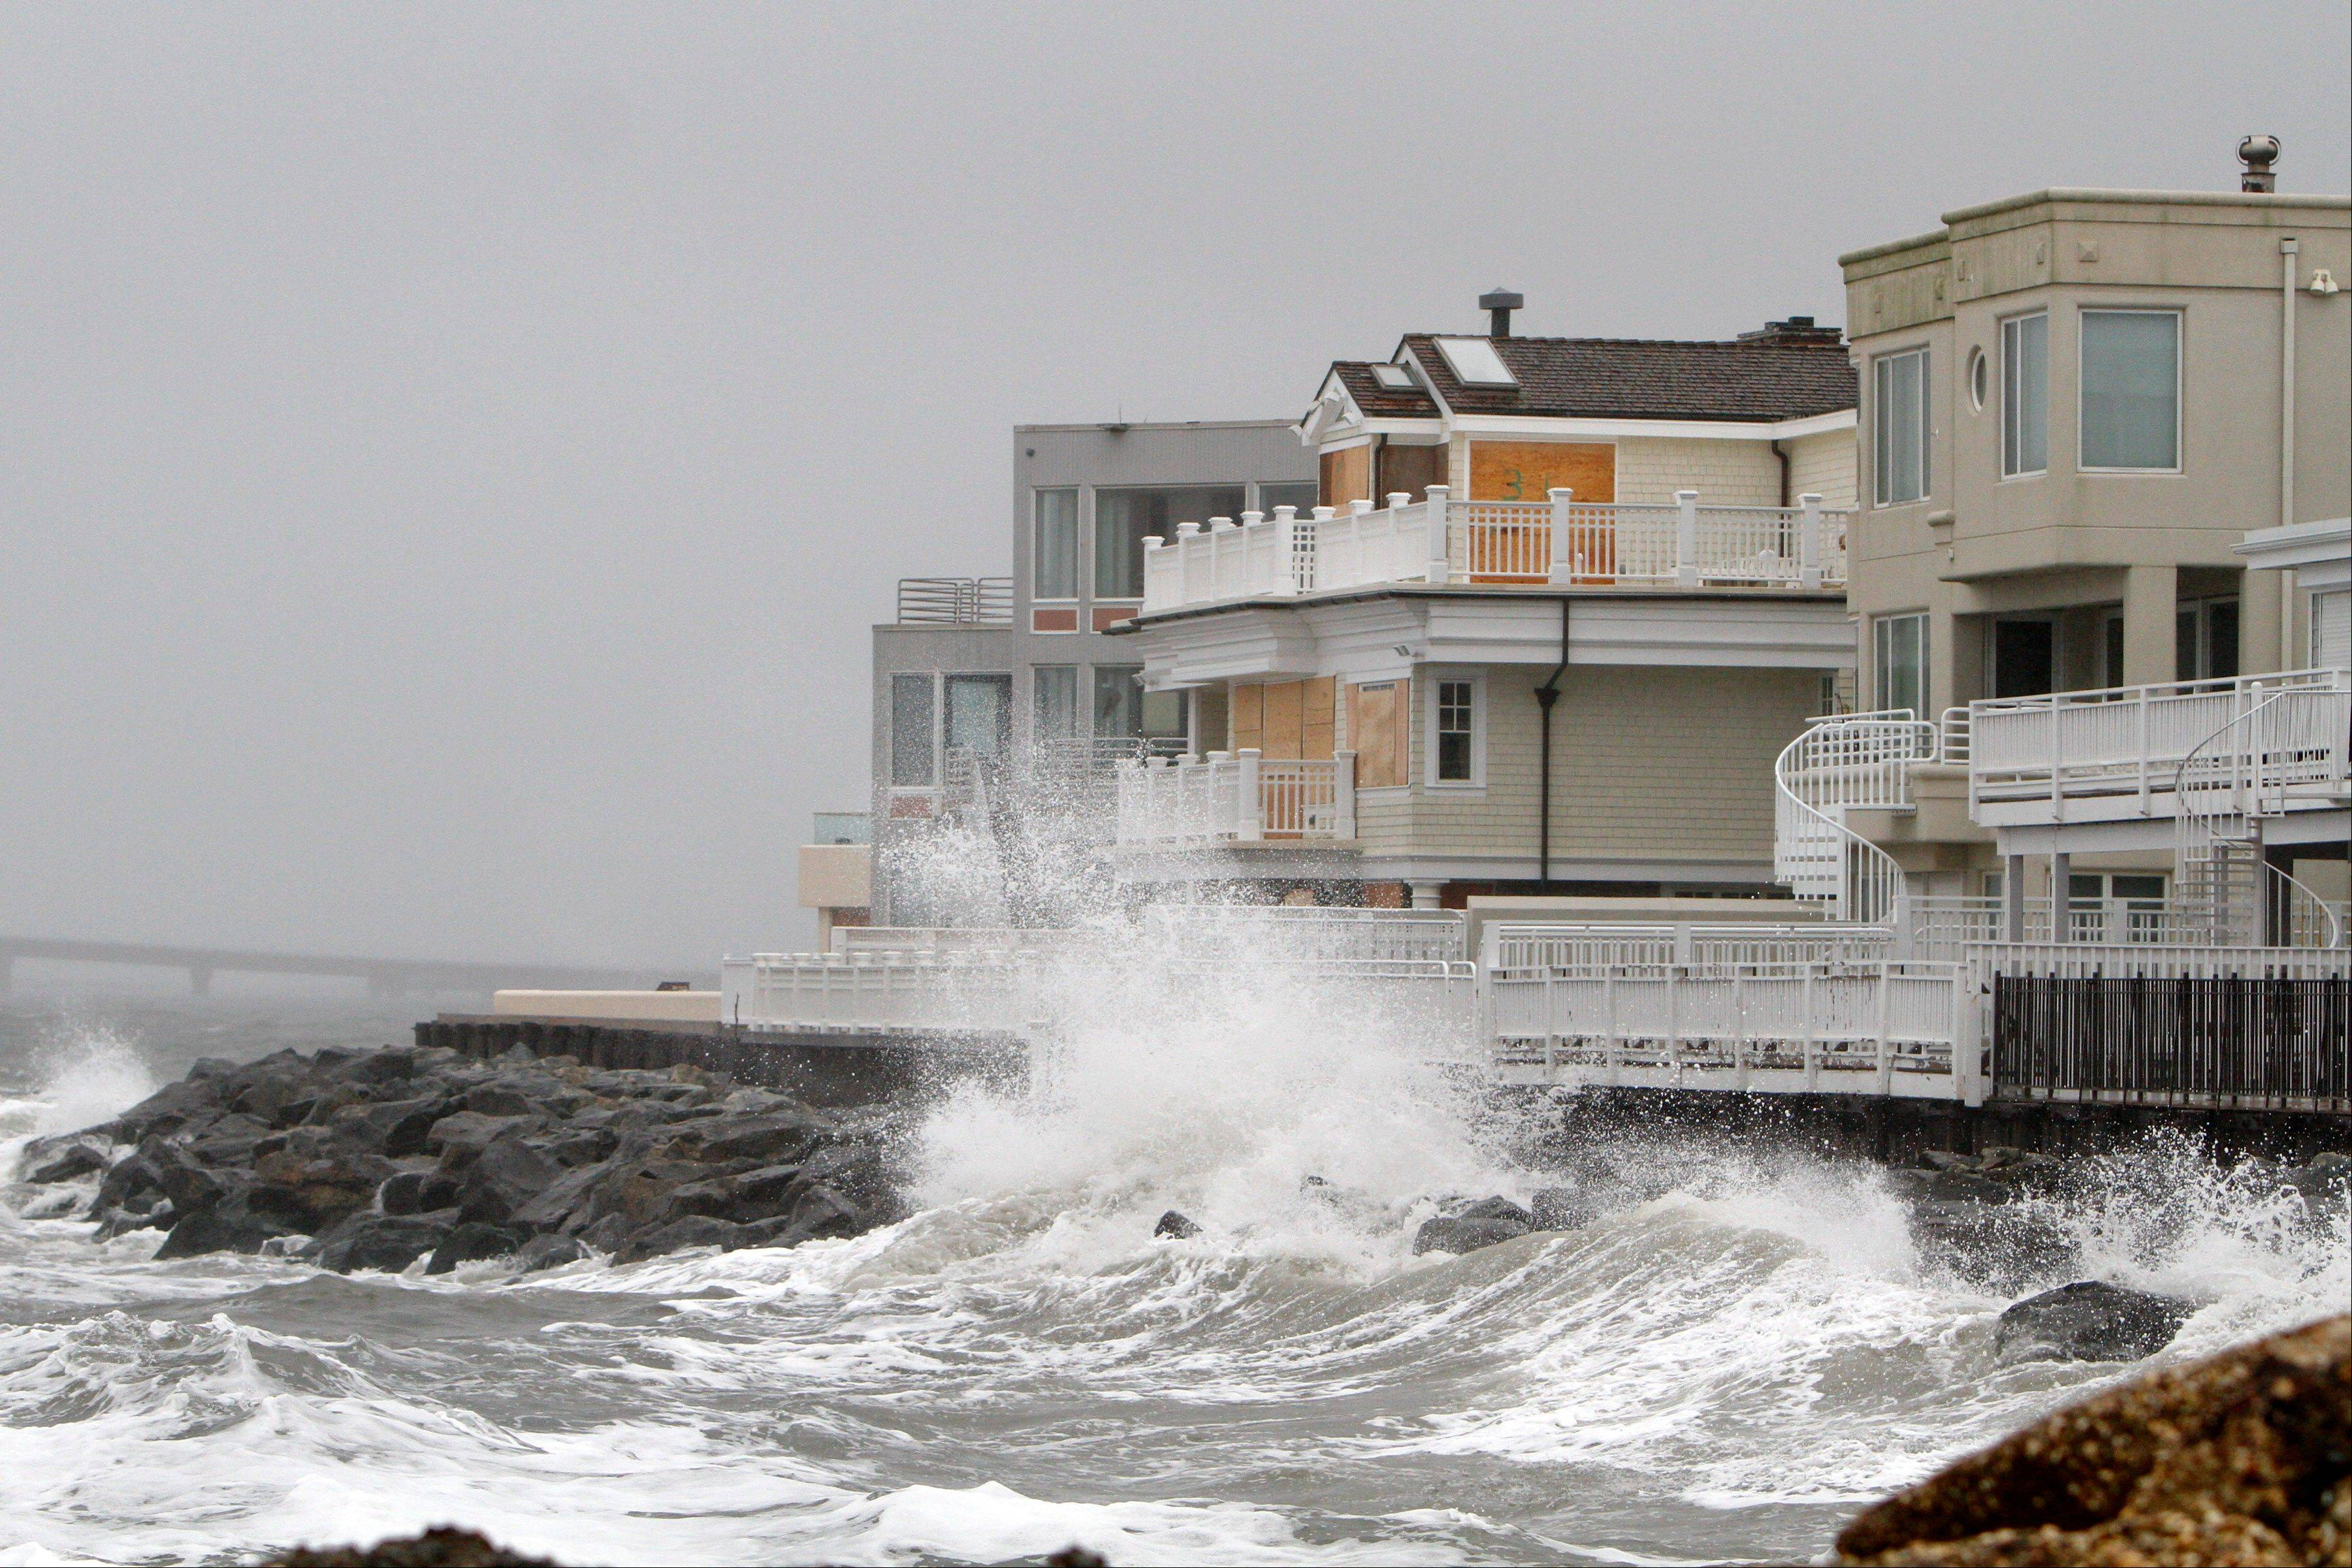 Waves crash onto the sea wall protecting homes in Longport, N.J., Sunday, as Hurricane Sandy approaches the area.